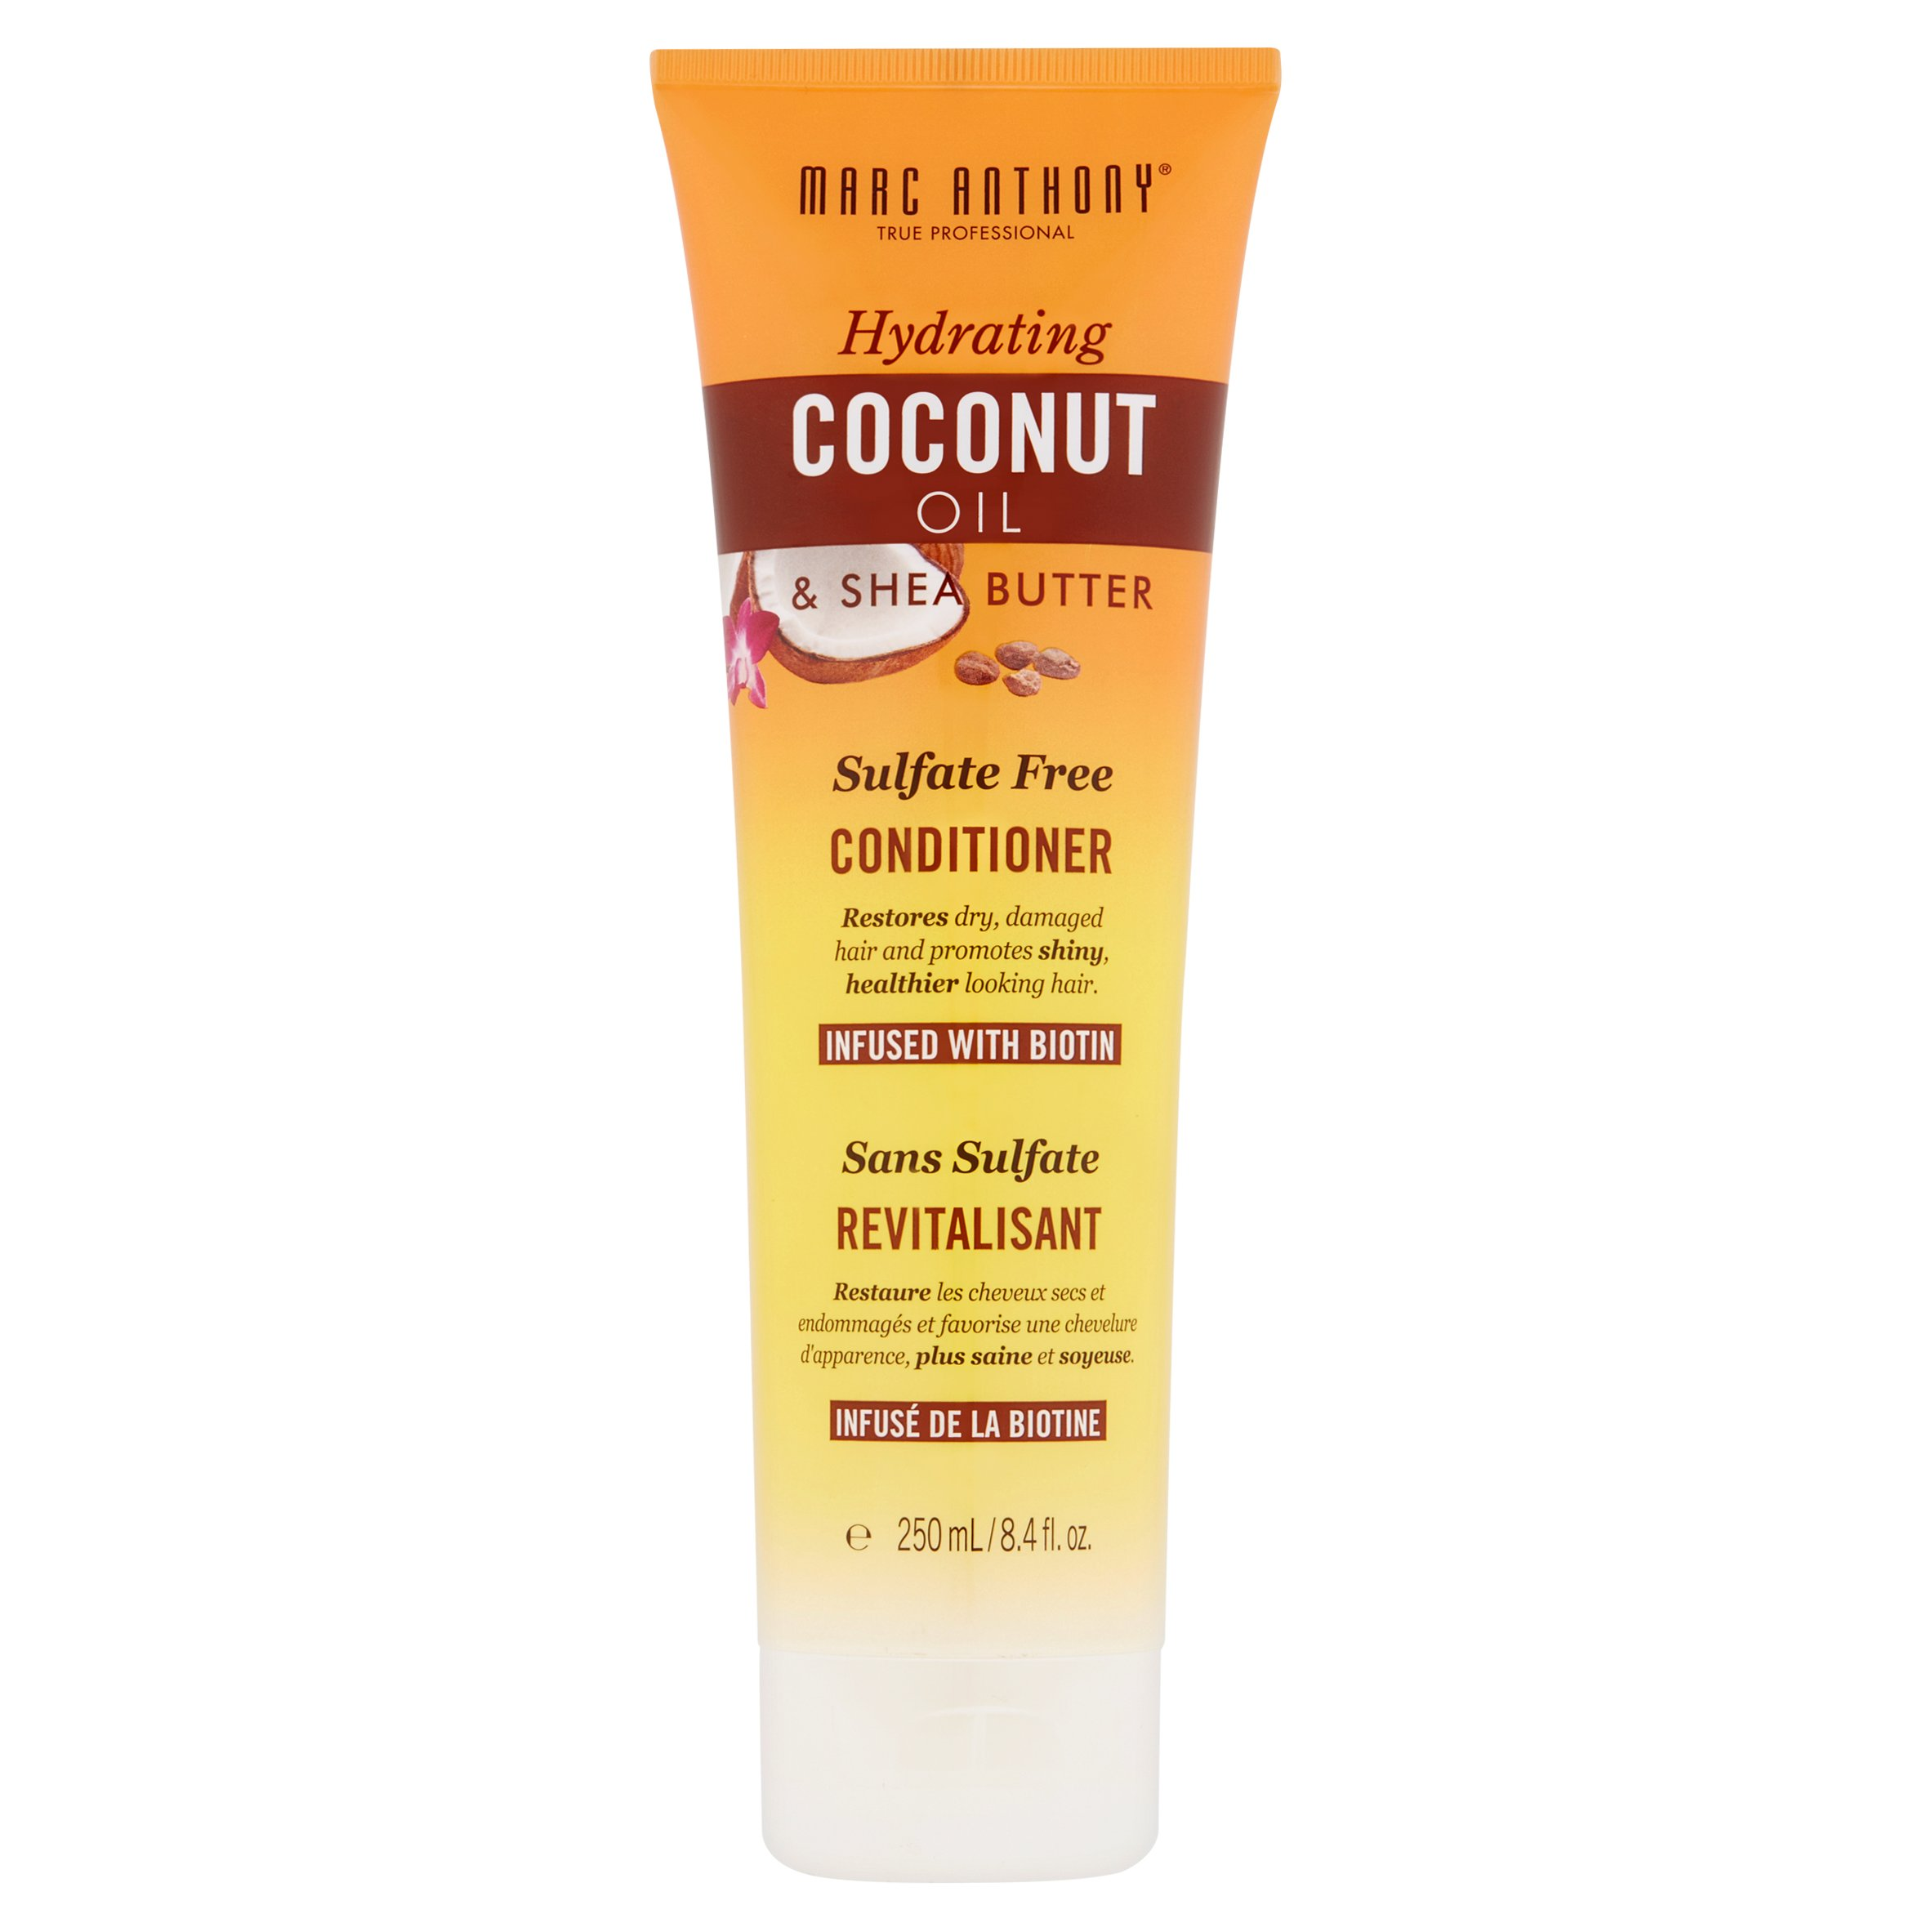 Marc Anthony Hydrating Coconut Oil & Shea Butter Conditioner, 8.4 fl oz